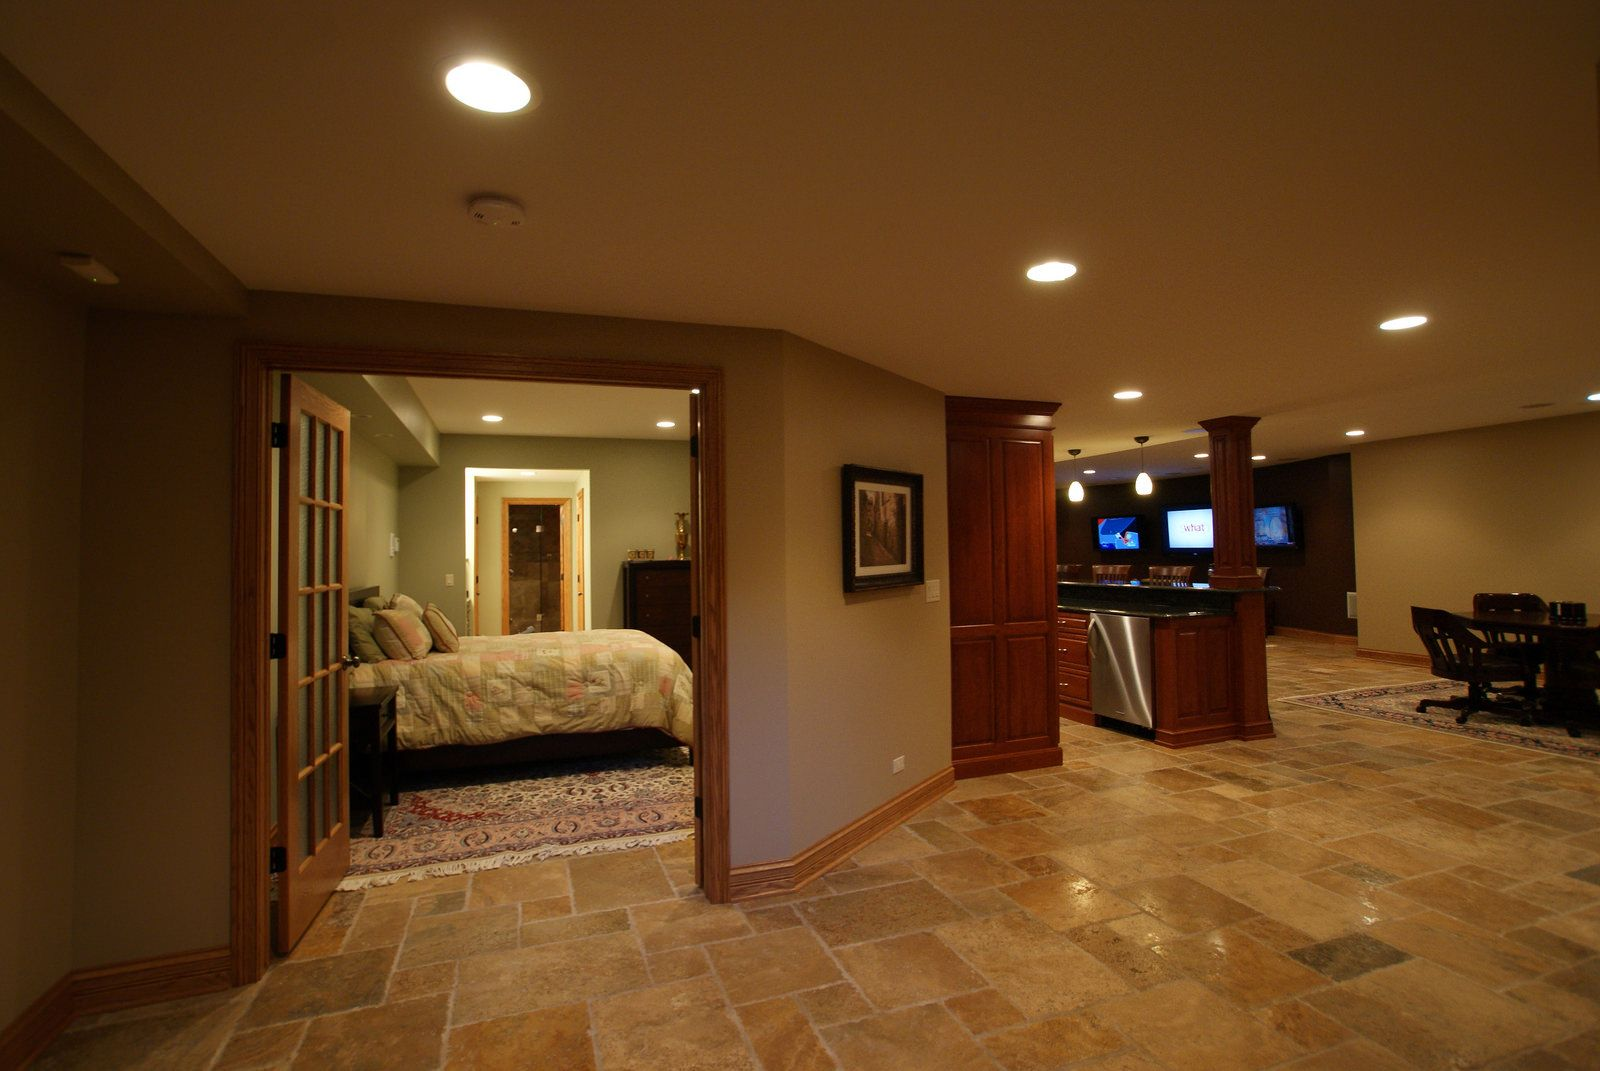 Remodeling Basement Ideas Adorable Amazing Marietta Basement Remodels Room Additions Georgia Also Design Inspiration